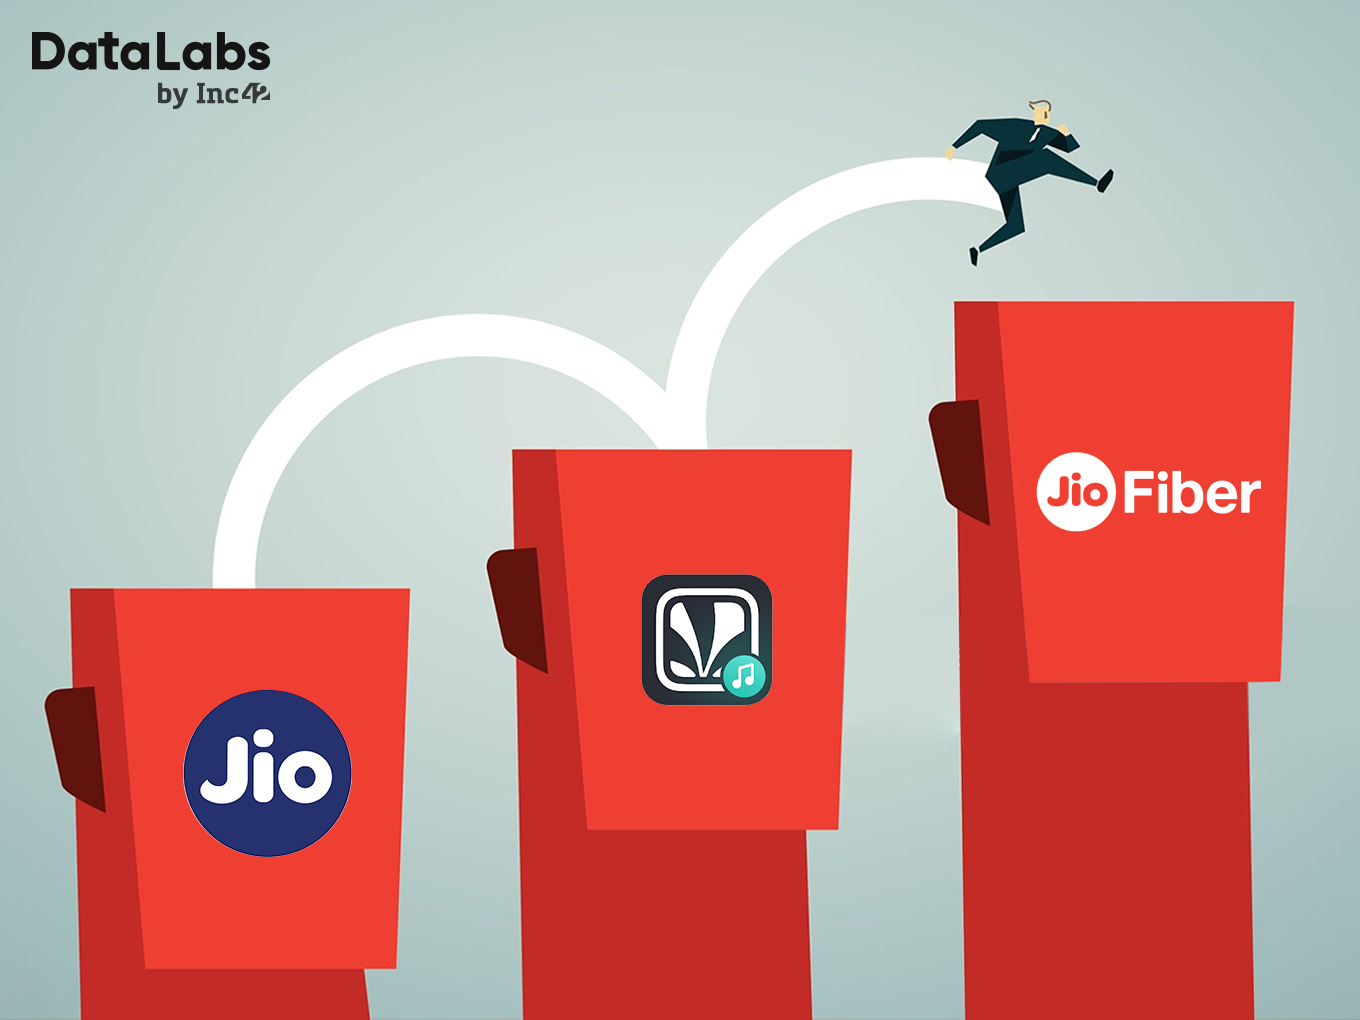 Data Is The New Oil: The Changing Nature Of Reliance And Rise Of The Jio Digital Empire